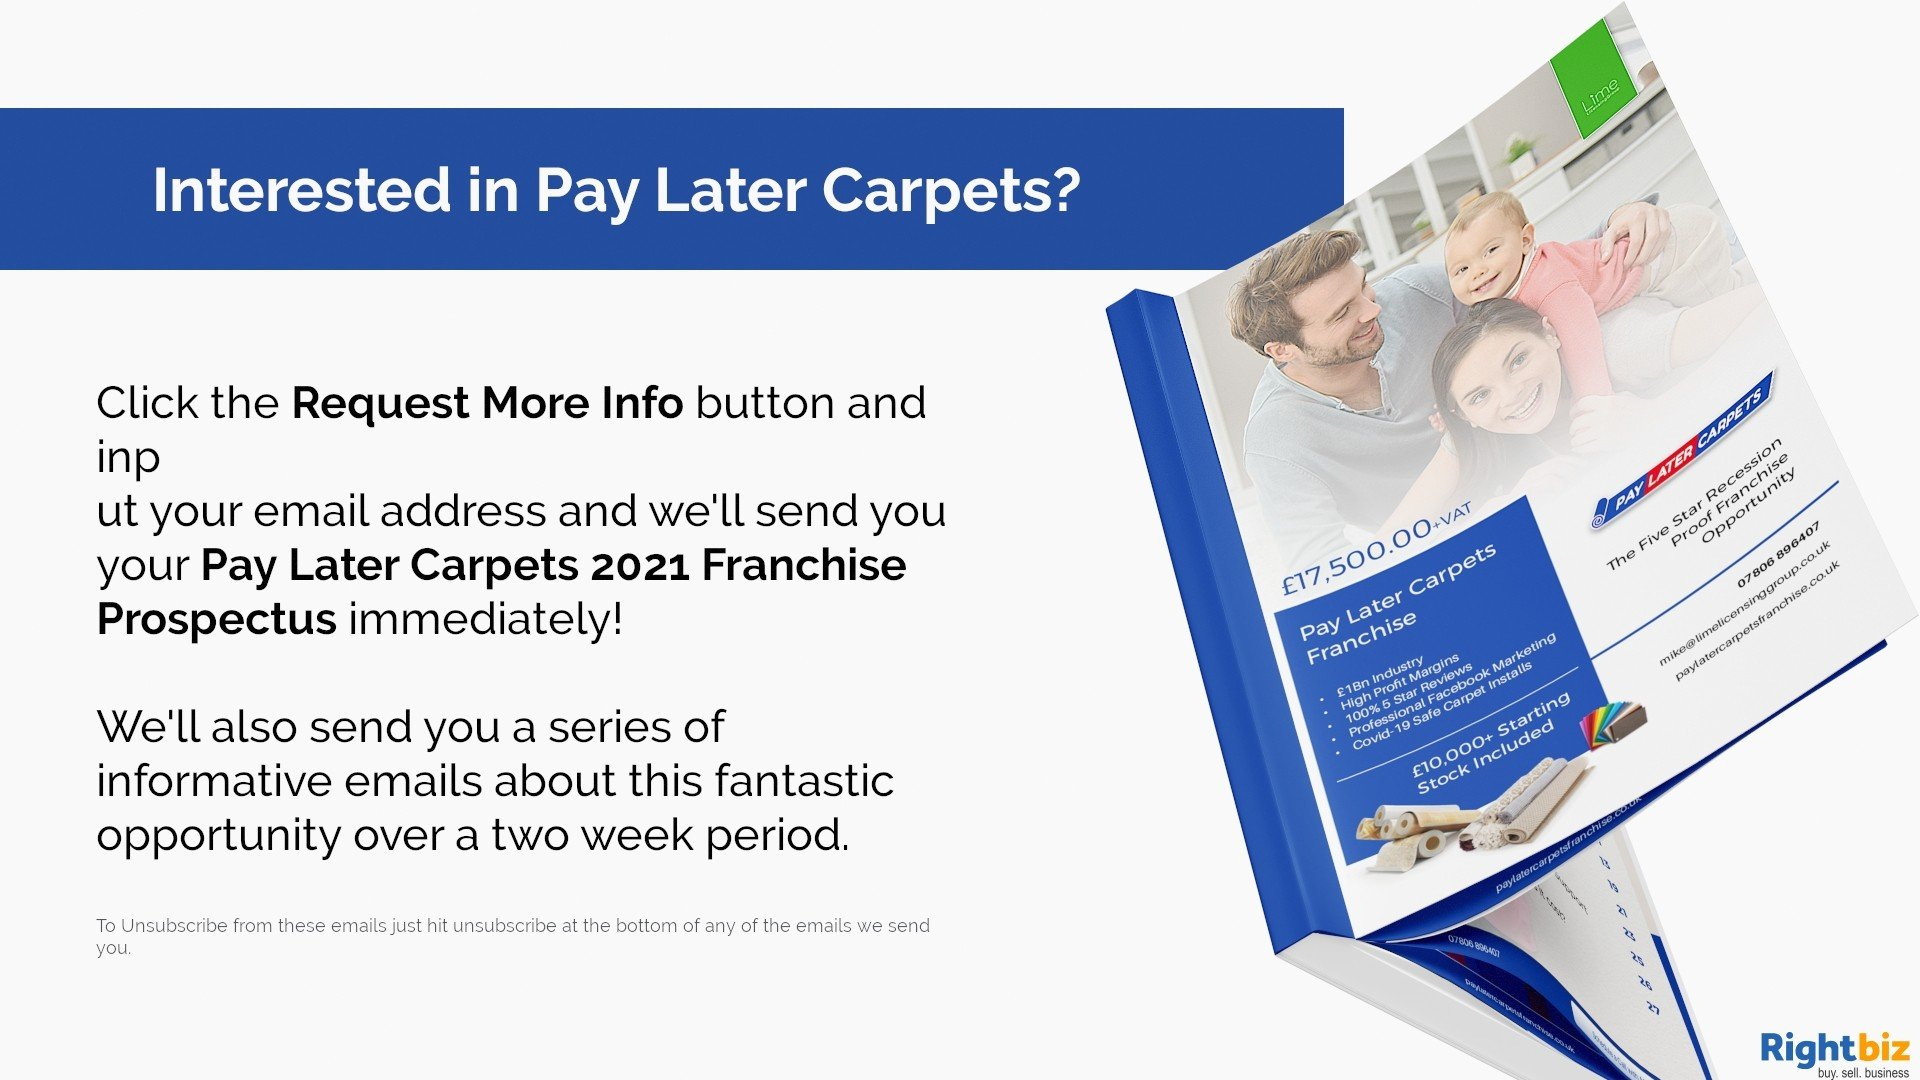 Pay Later Carpets Franchise Glasgow Our First Franchisee Made £11,000+ Profit in Month One - Image 6